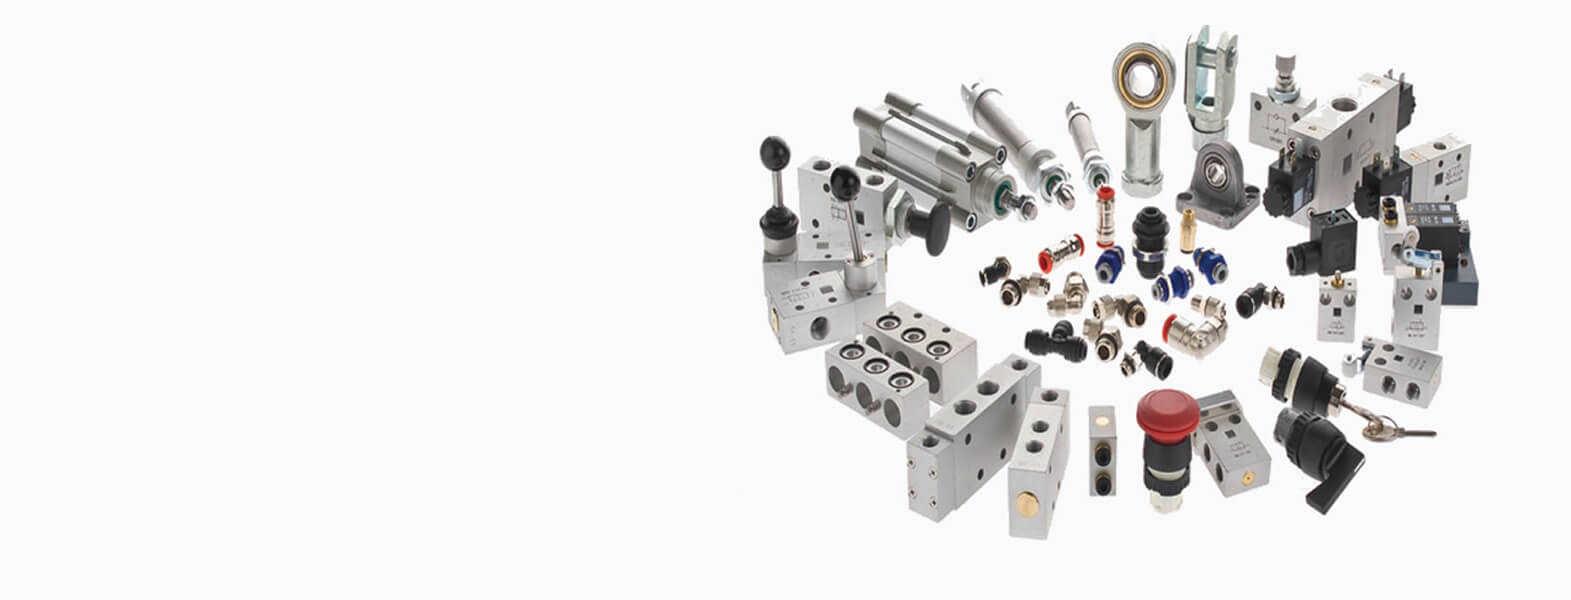 Imported And Qualified Vacuum Components